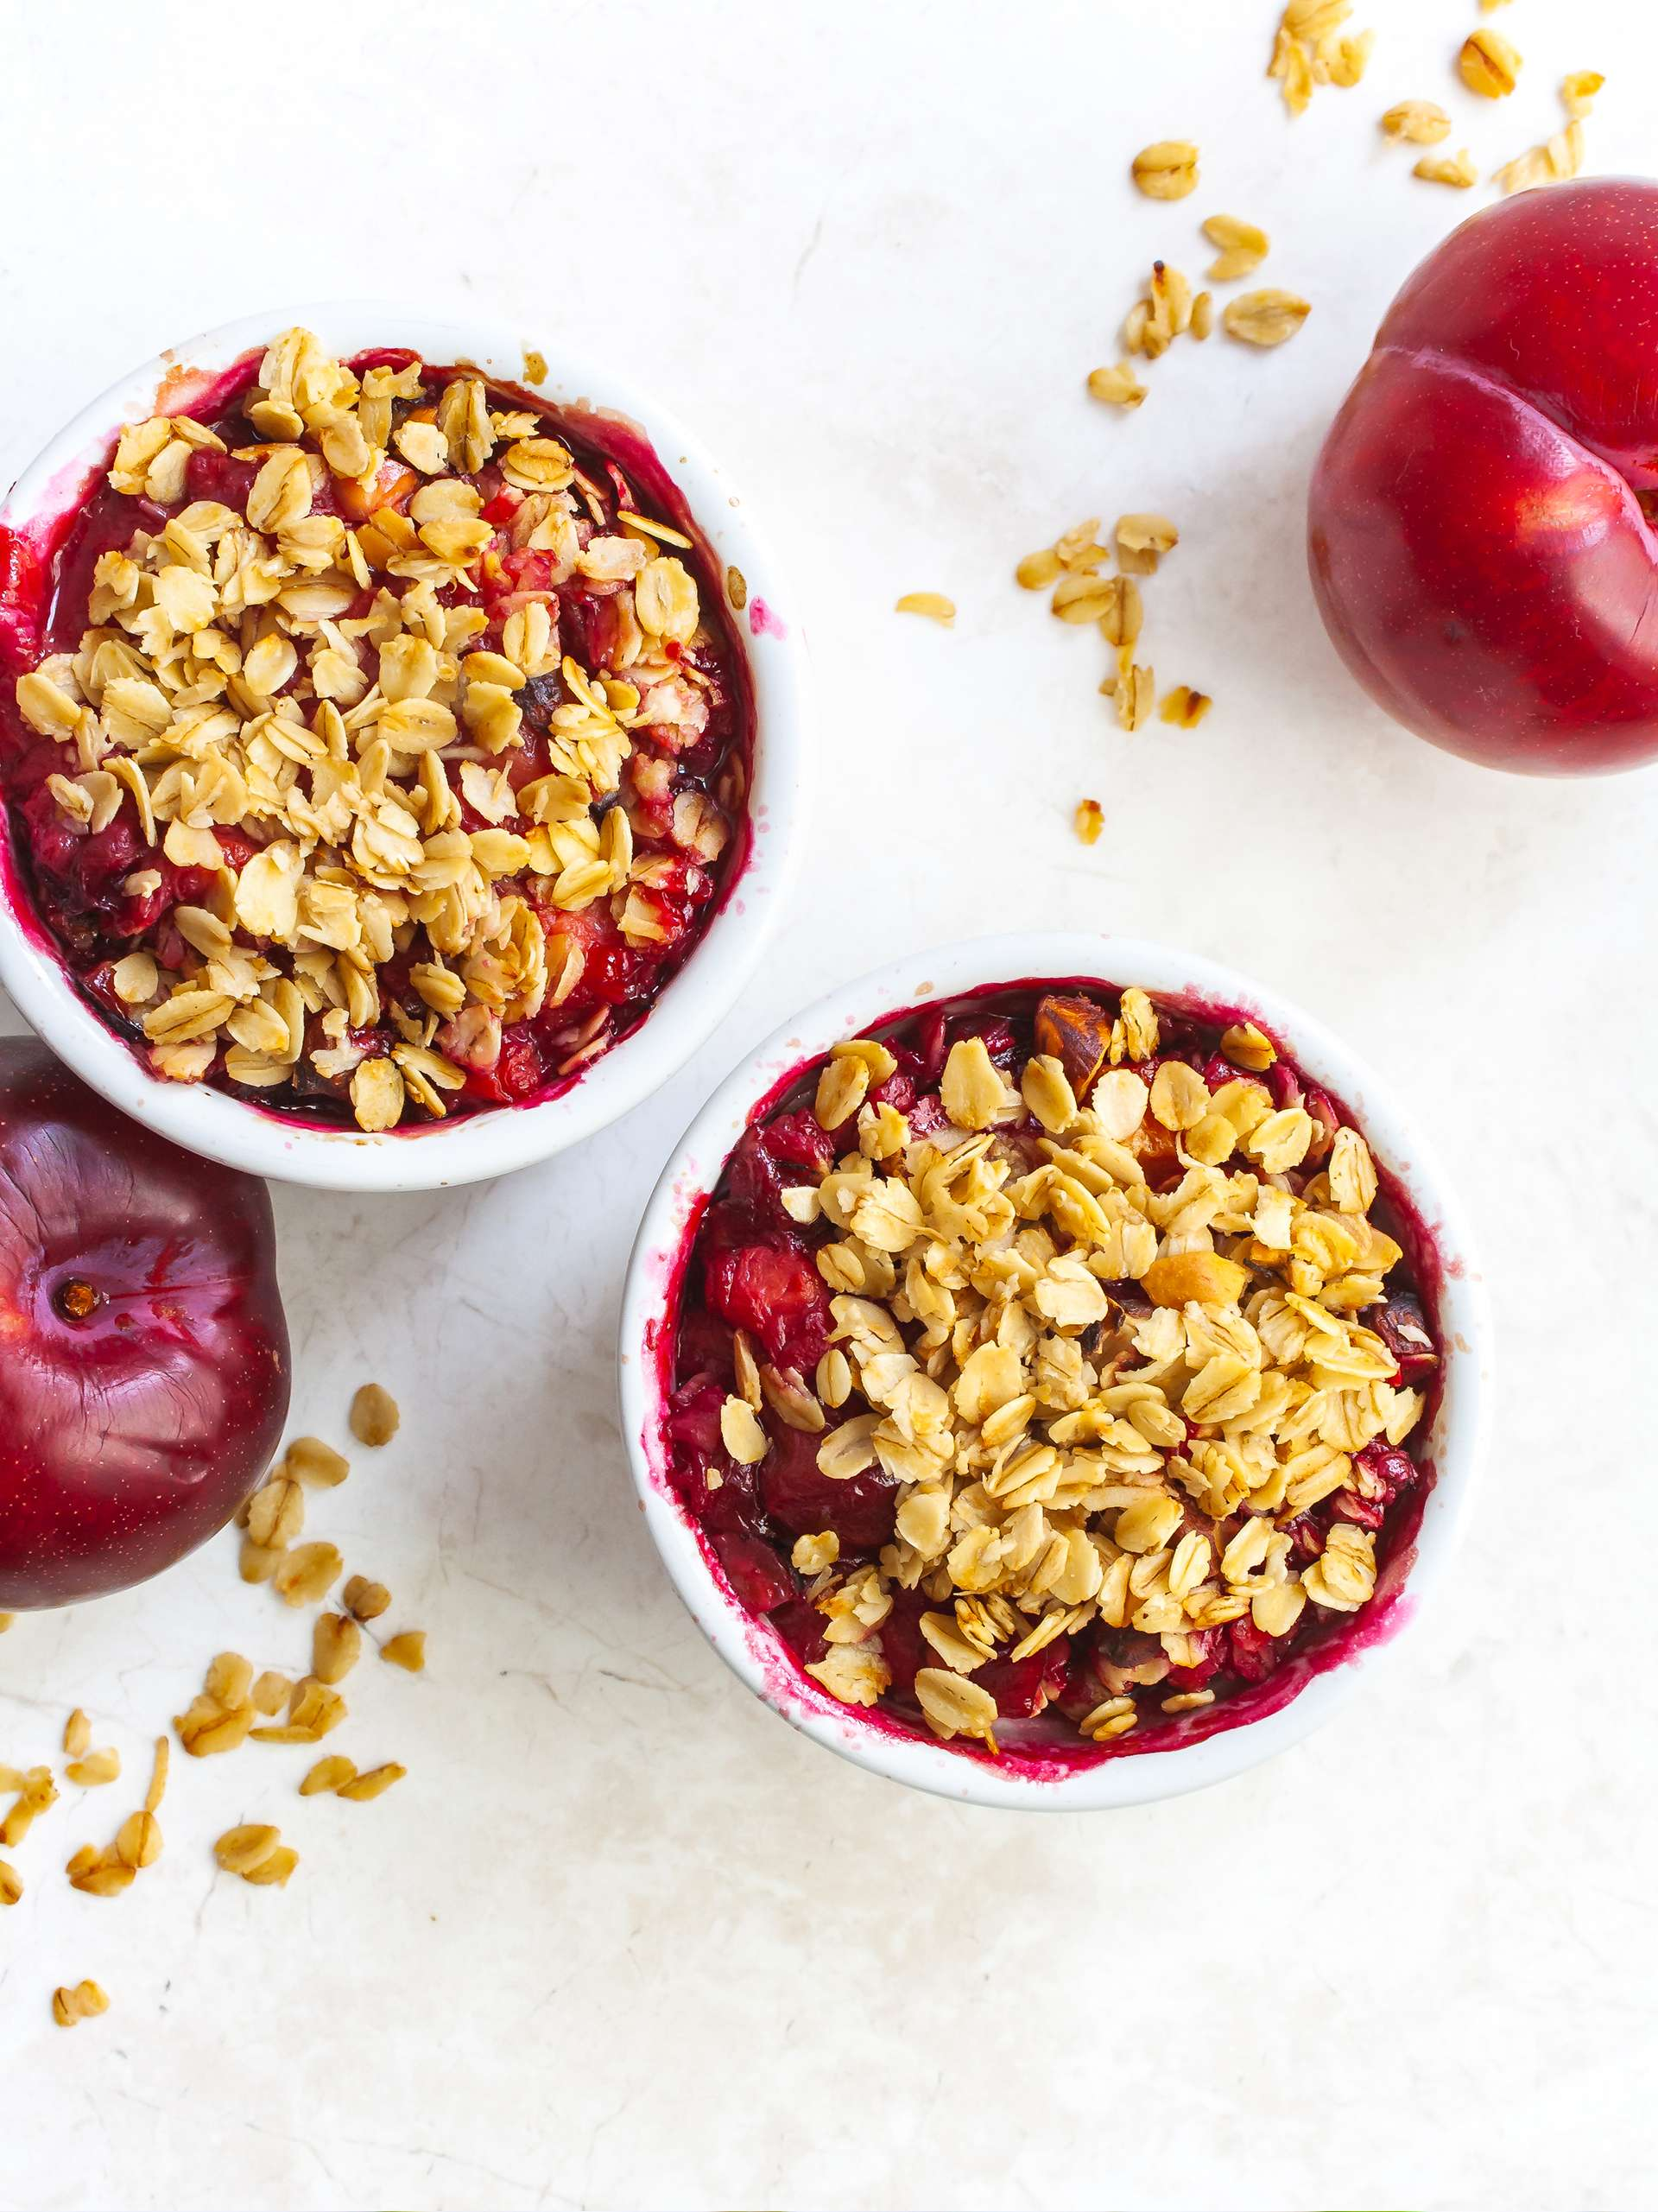 Healthy Vegan Plum Crumble Recipe Thumbnail